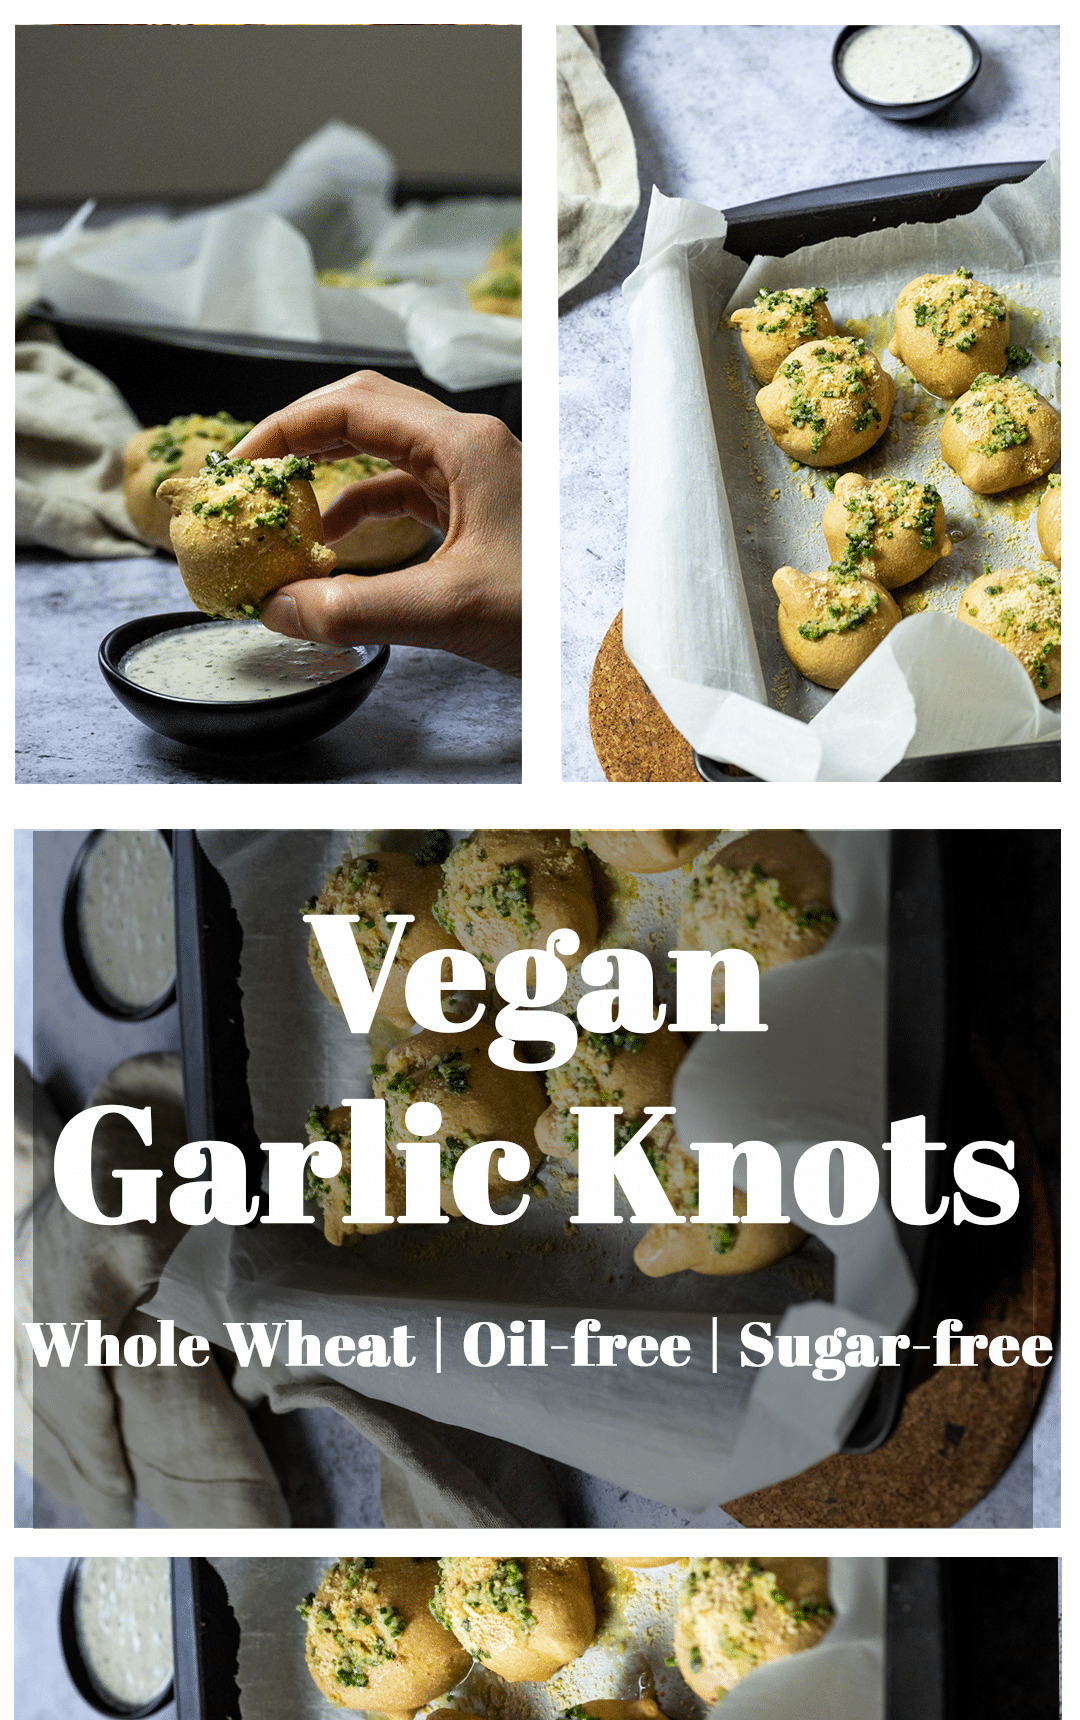 Graphic of vegan garlic knots with text layover